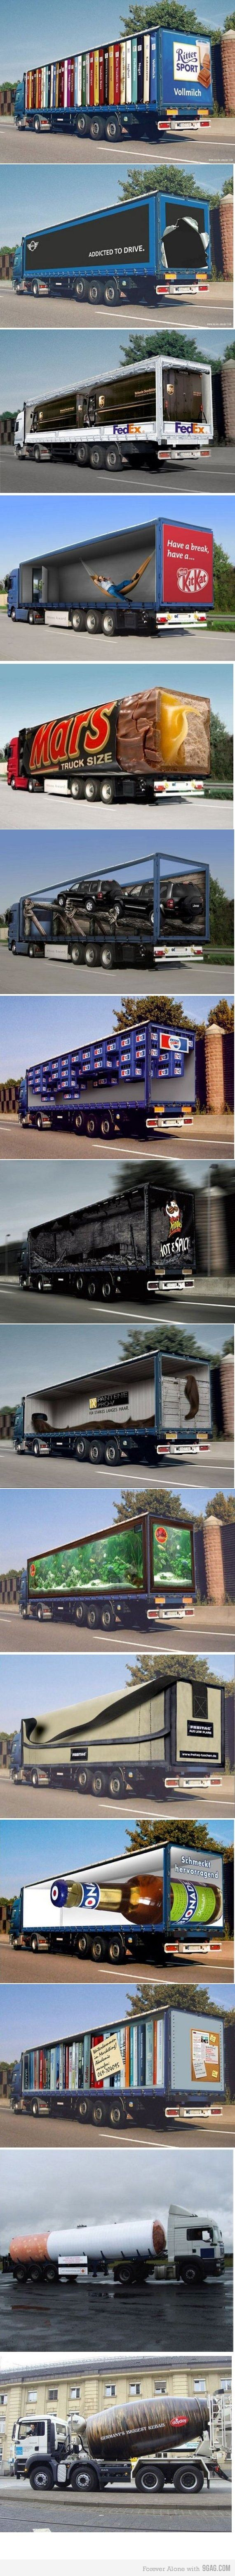 Ads on trucks